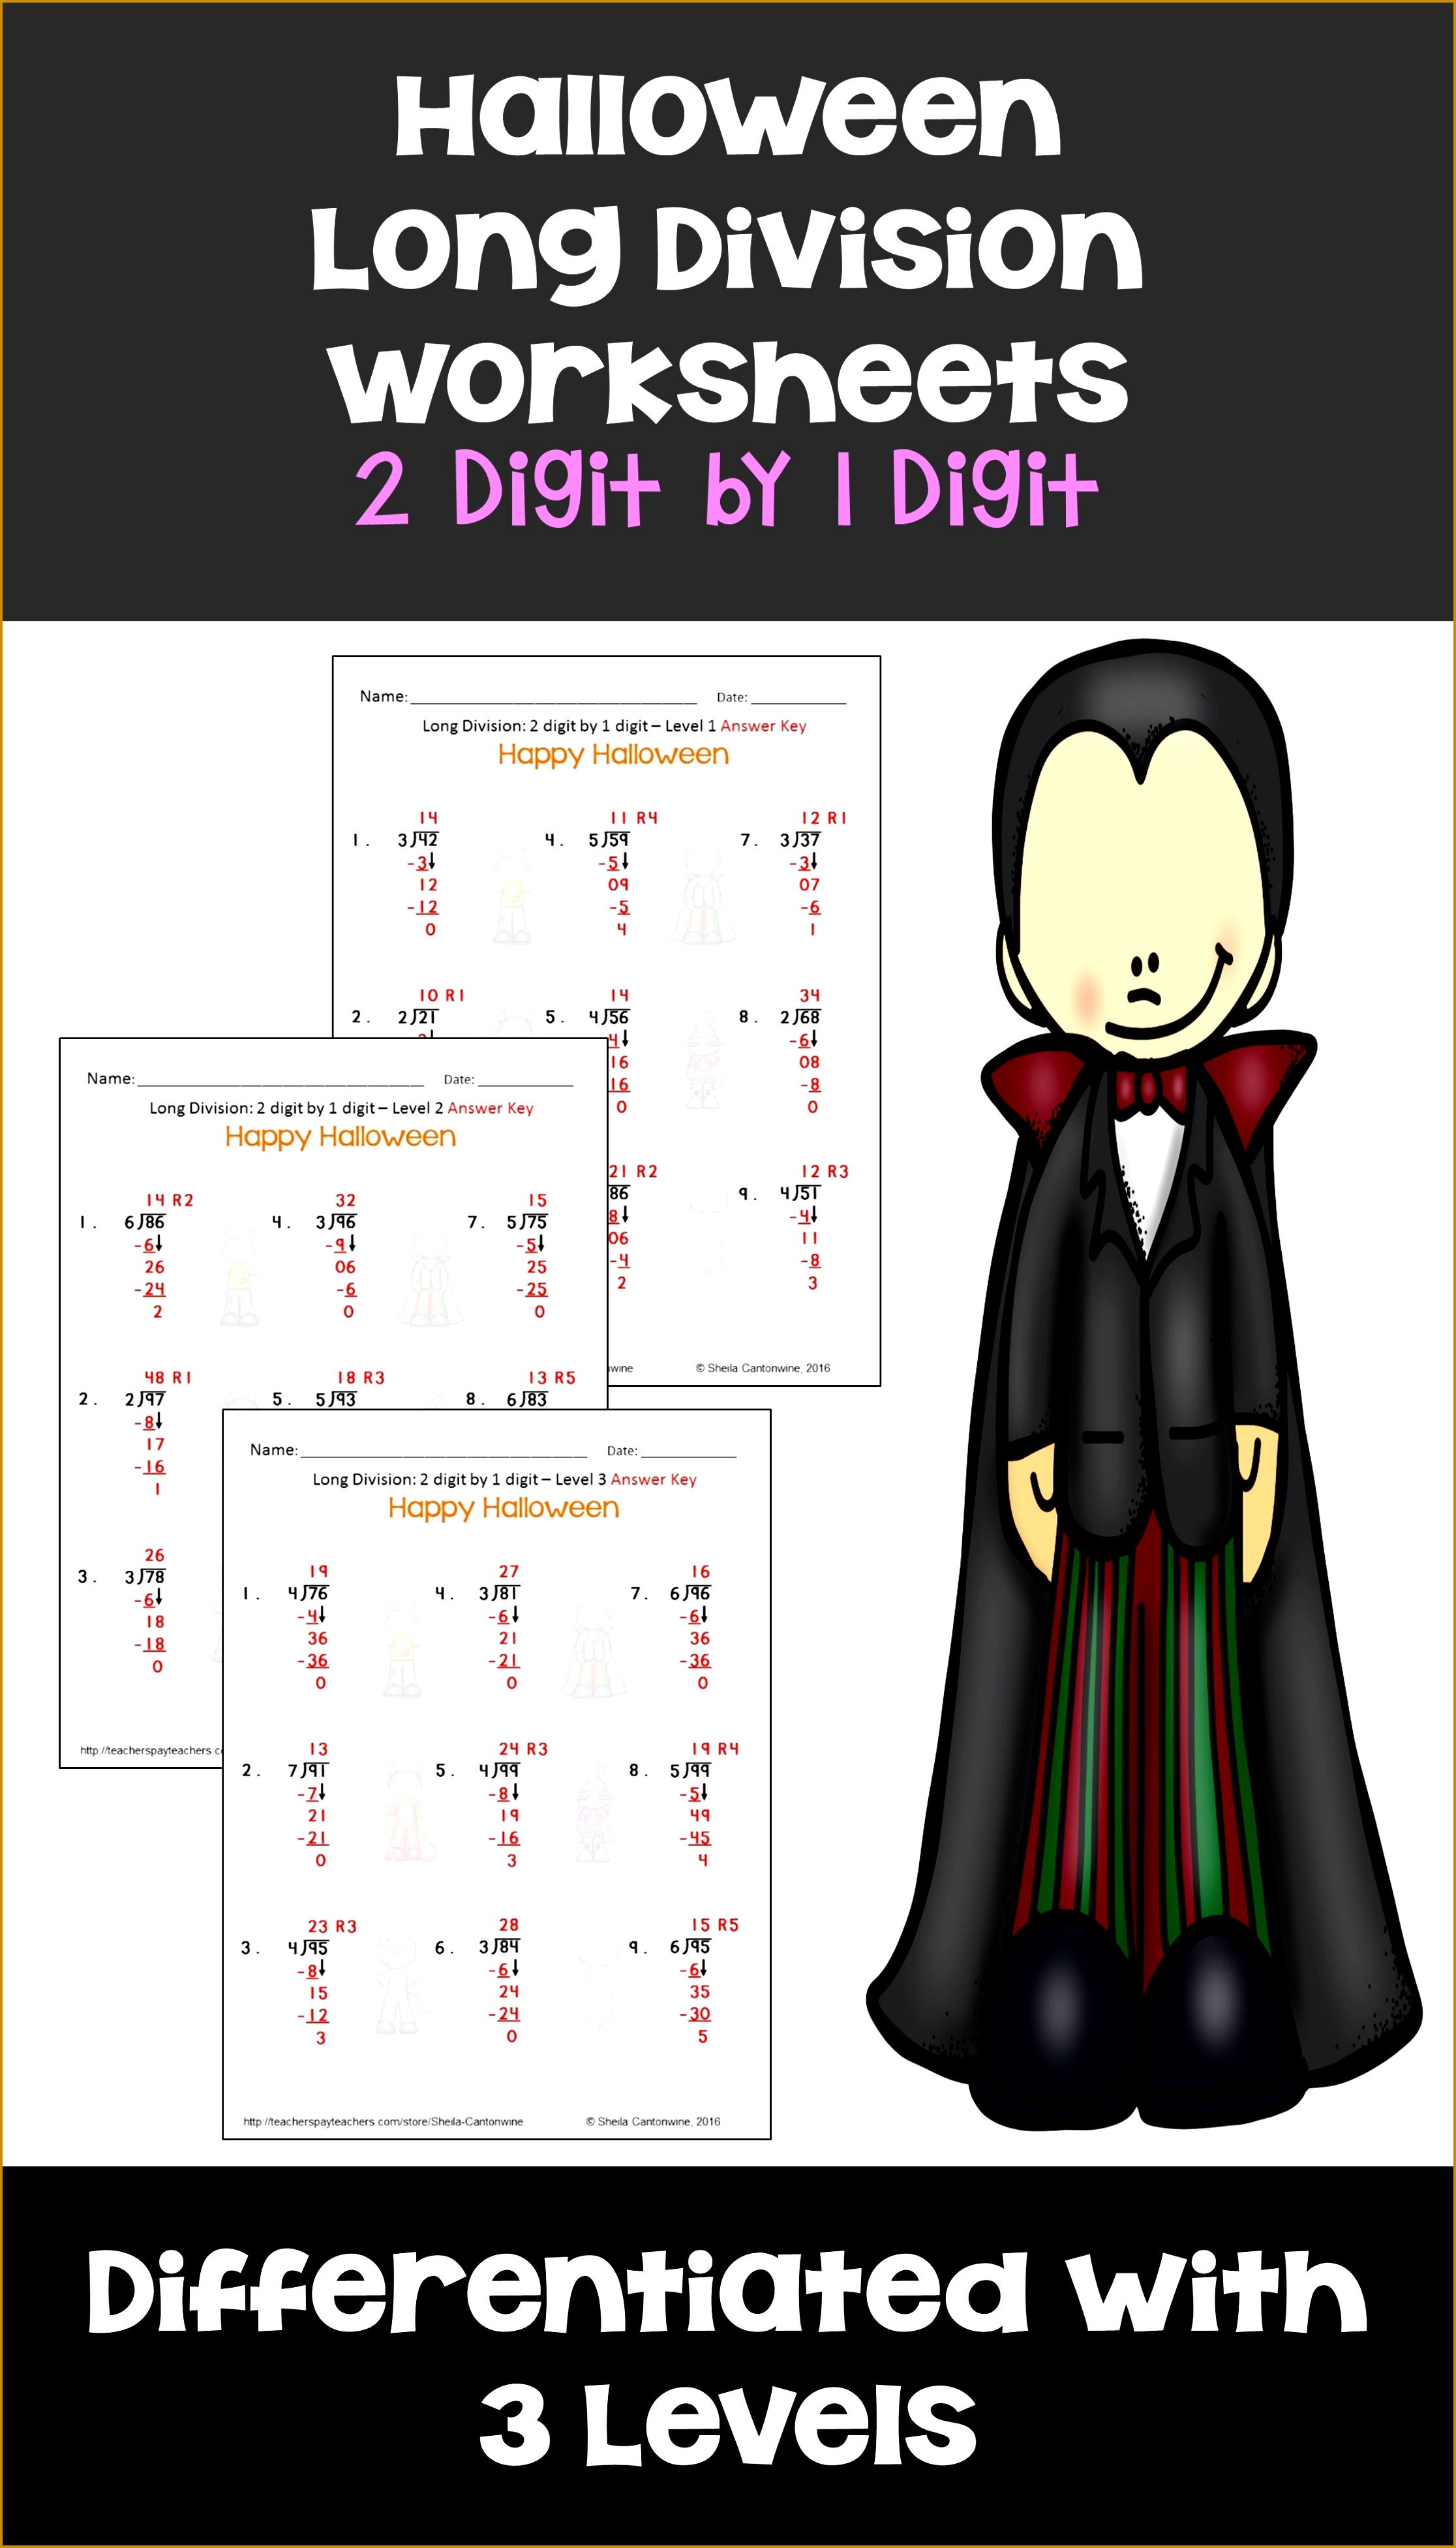 Halloween Math Long Division Worksheets 2 digit by 1 digit Differentiated 39062232